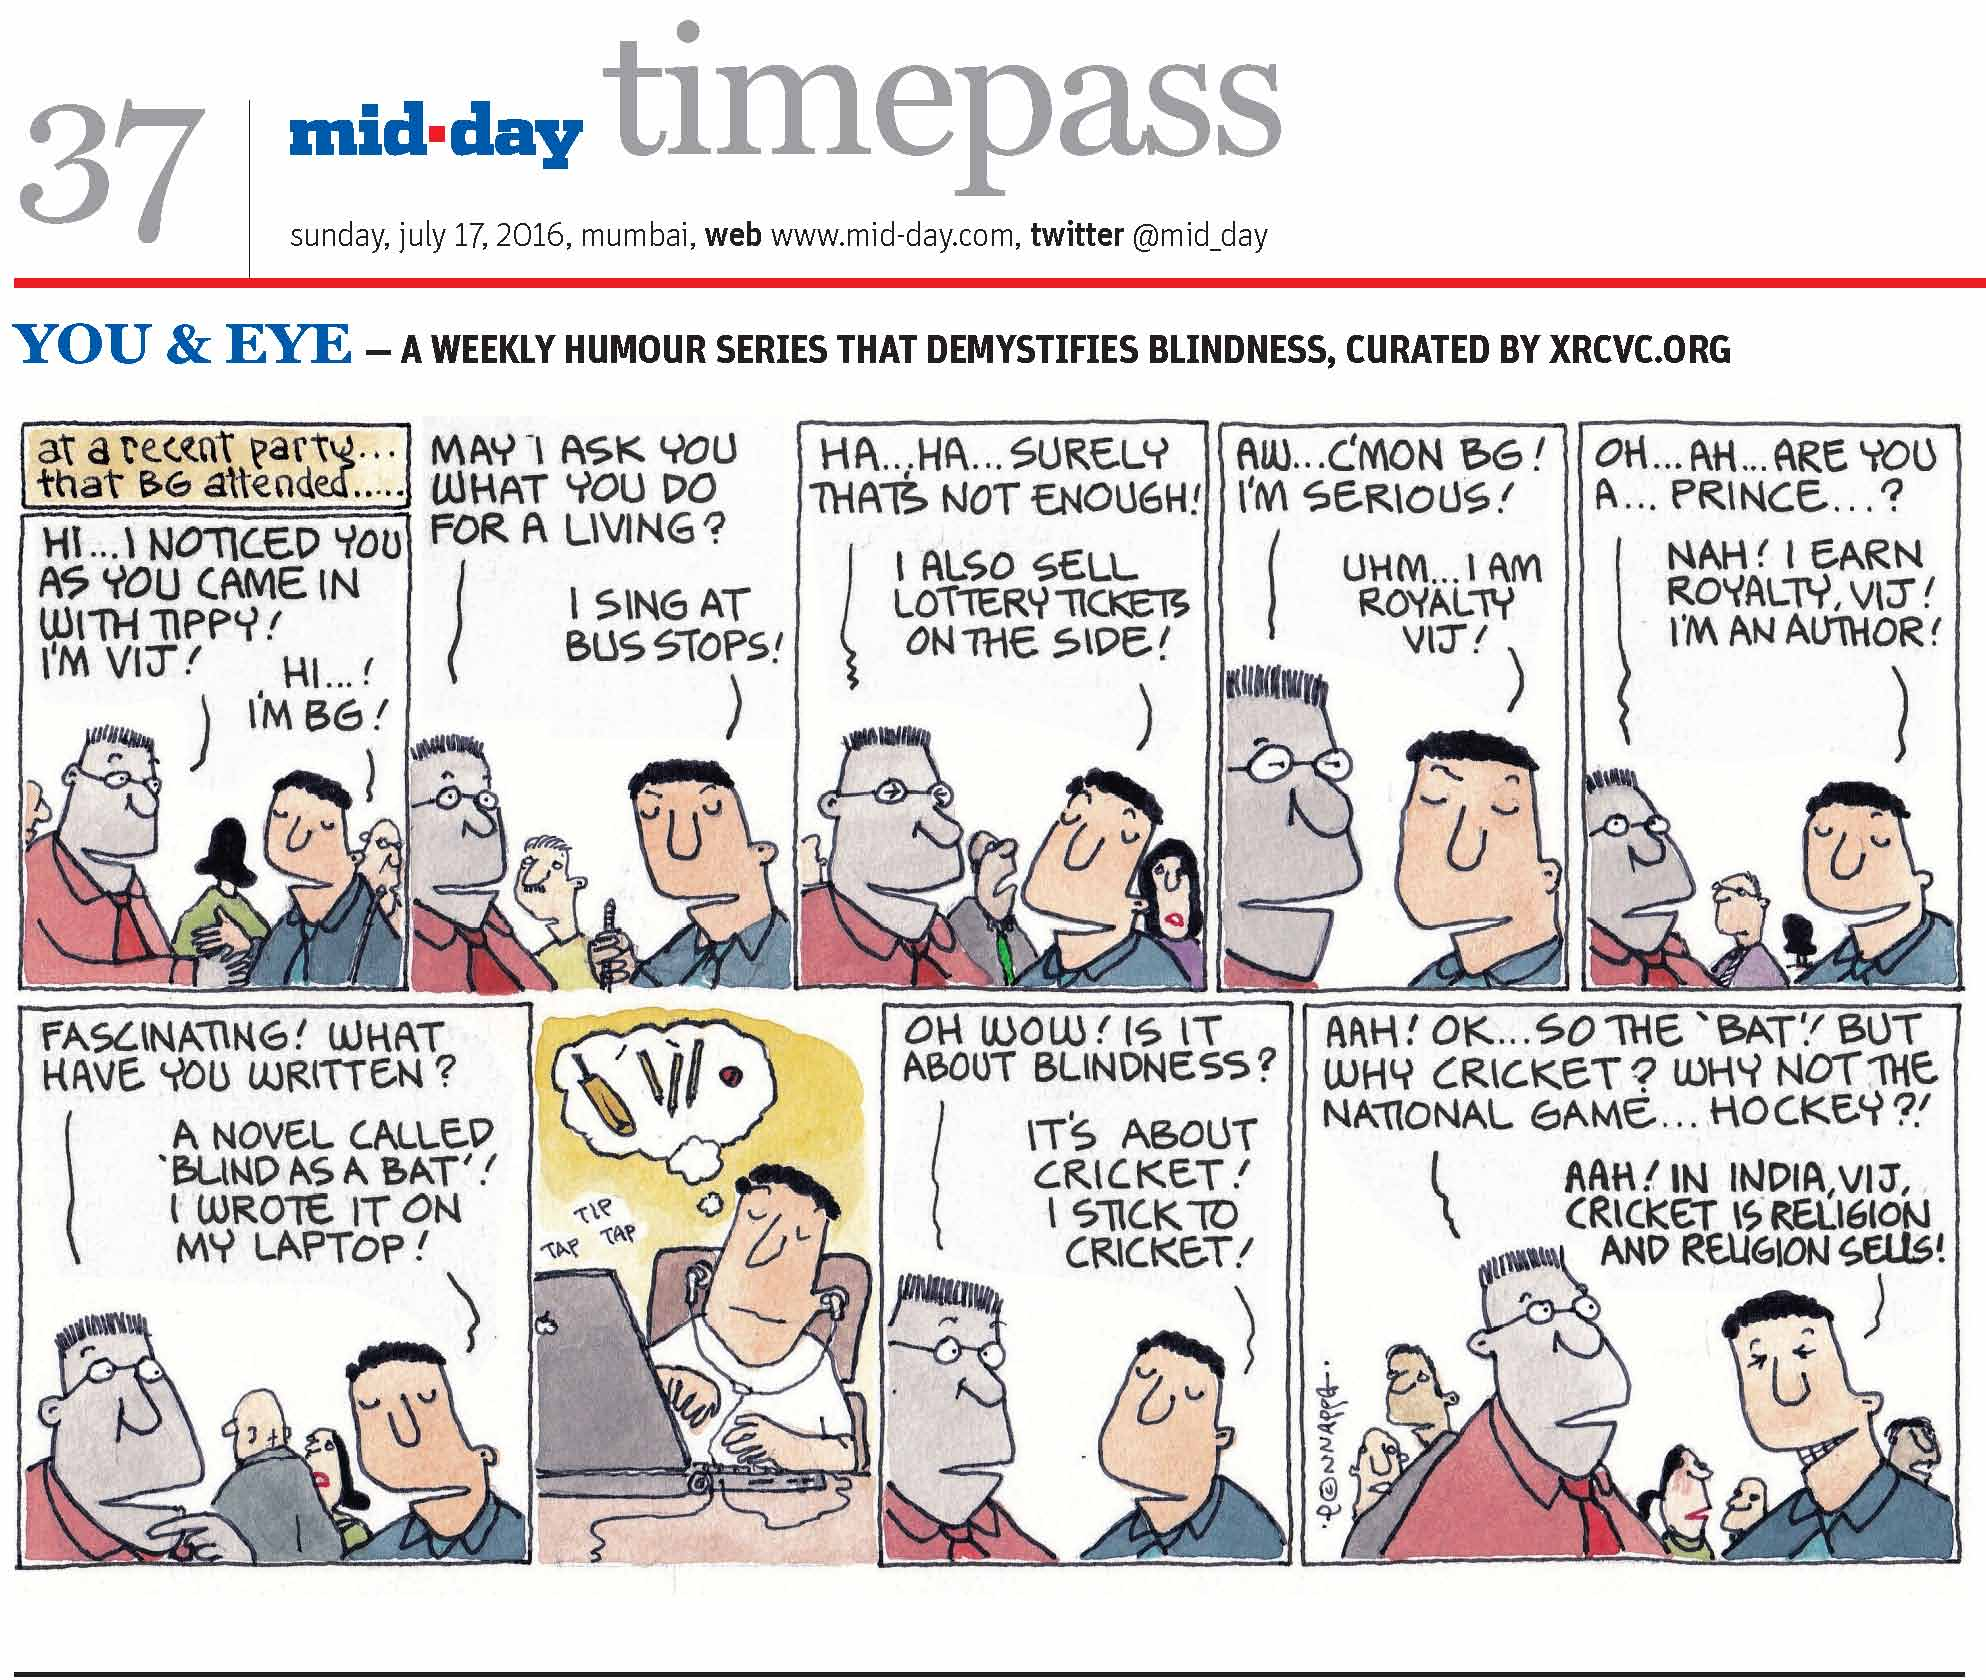 Page 37 mid-day timepass, sunday, july 17, 2016, mumbai, web: www.mid-day.com, twitter @mid_day YOU & EYE – A WEEKLY HUMOUR SERIES THAT DEMYSTIFIES BLINDNESS, CURATED BY XRCVC.ORG Image description: A cartoon strip with 9 frames… Frame 1: (The visually impaired man – BG – shaking hands with a man in spectacles; other people are in the background) At a recent party… that BG attended… Man with spectacles: Hi… I noticed you as you came in with Tippy! I'm Vij! BG: Hi…! I'm BG! Frame 2: (Both continue talking, as another man in seen in the background) Vij: May I ask you what you do for a living? BG: I sing at bus stops! Frame 3: (Both continue talking; other people are in the background)